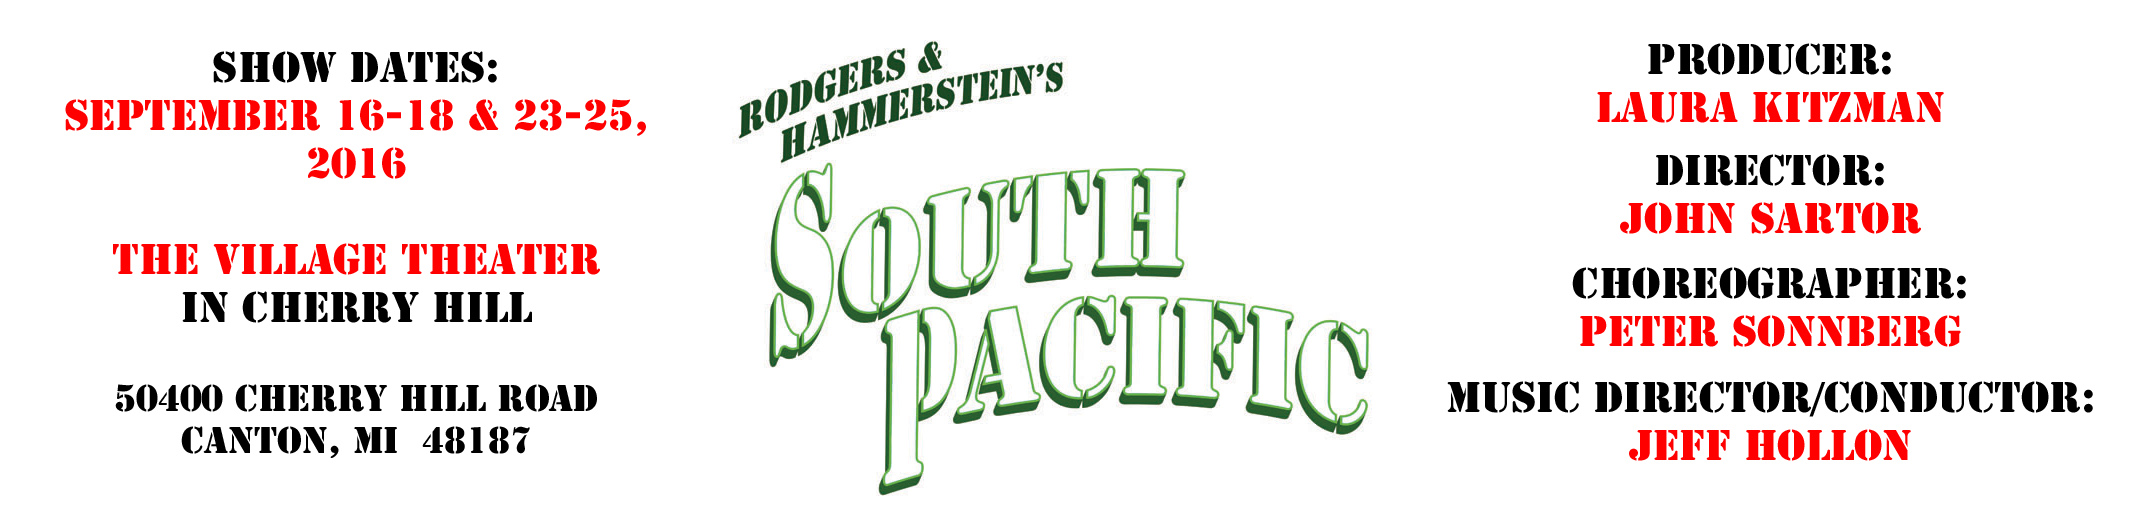 SouthPacificBanner3_website